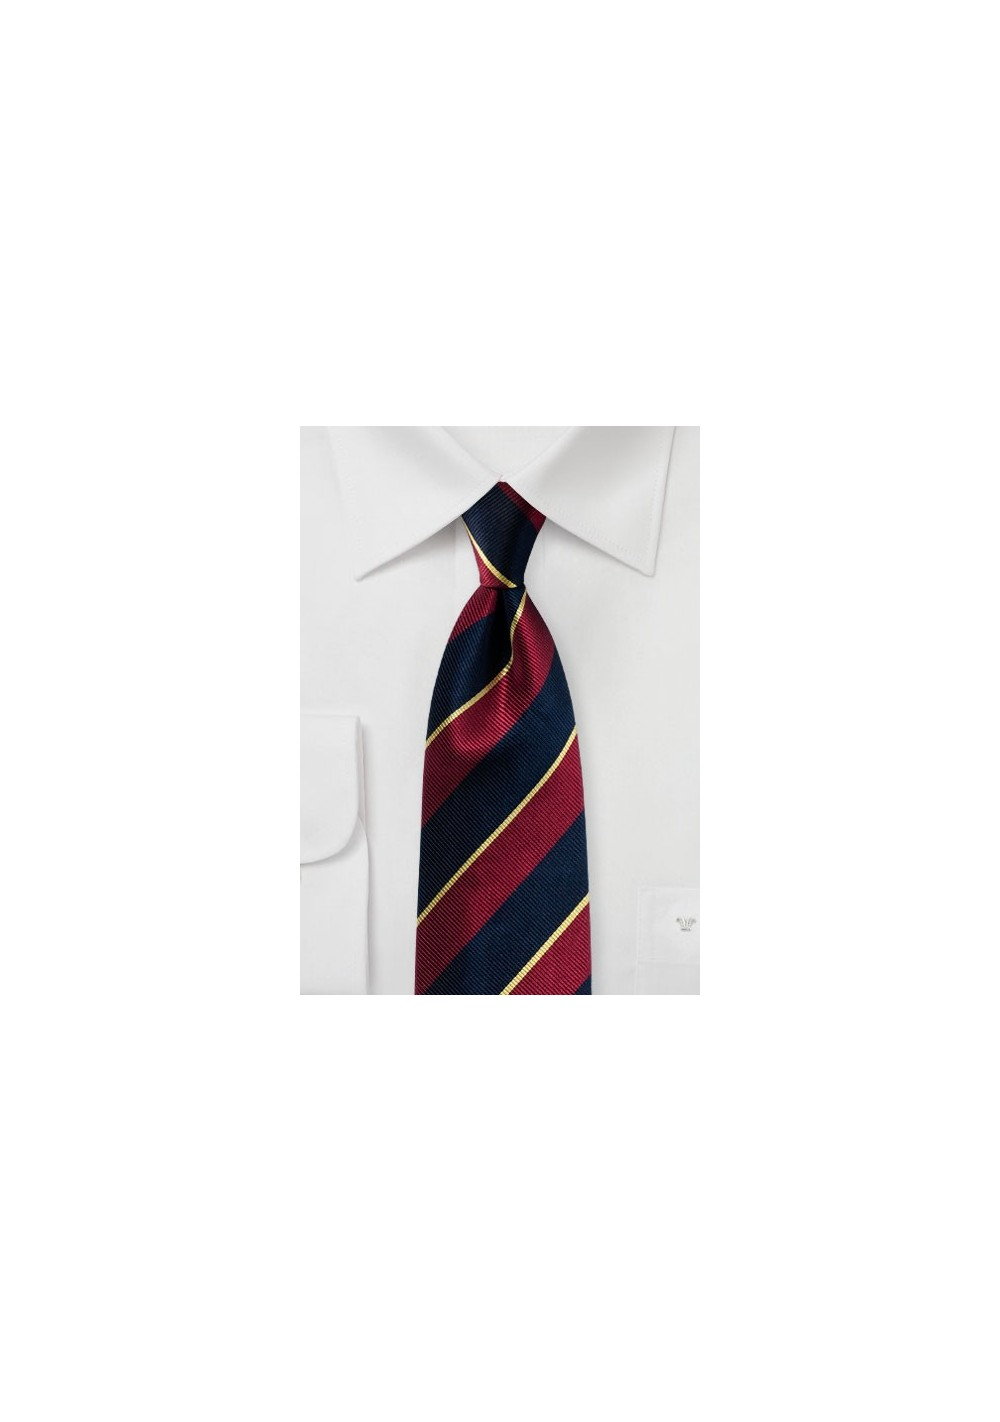 Classic Regimental Striped Tie in Navy, Burgundy, Gold